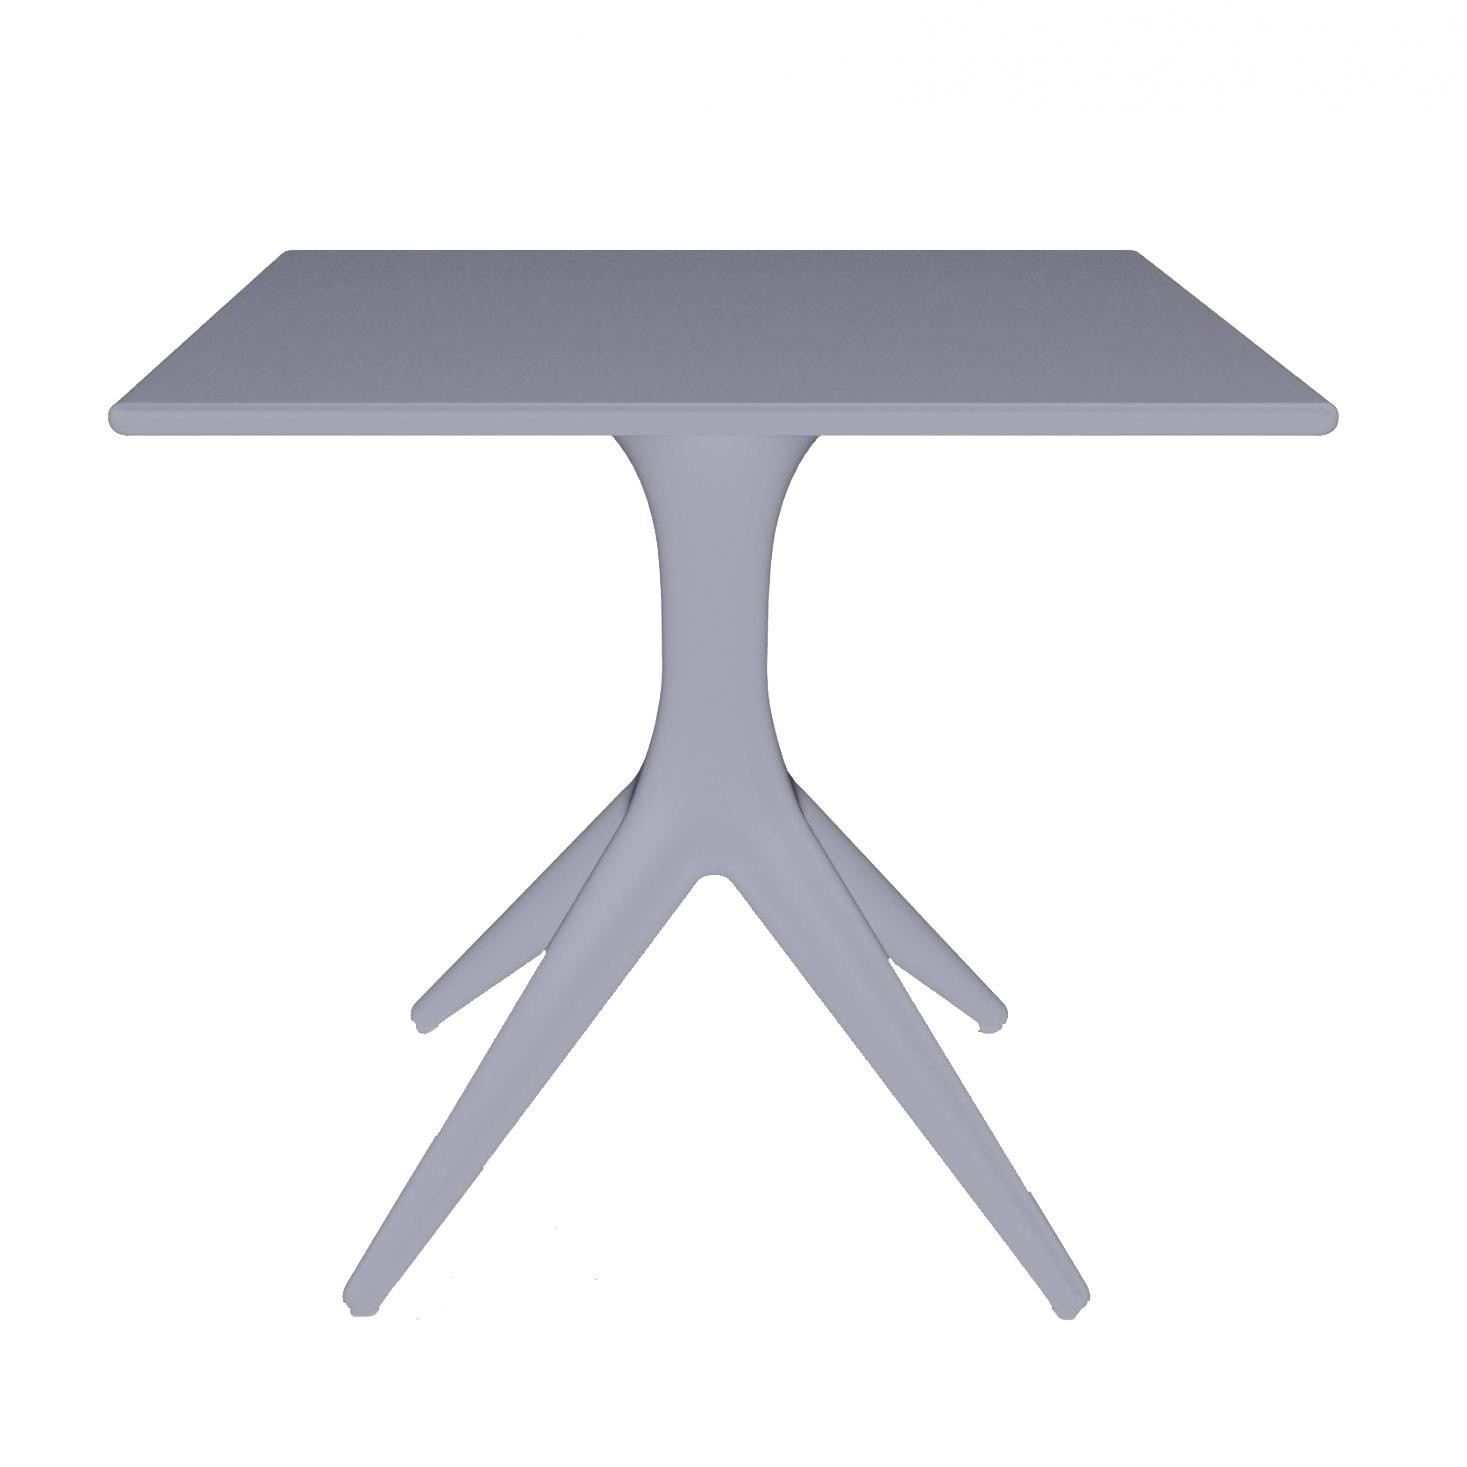 Driade app outdoor table 80x80cm ambientedirect